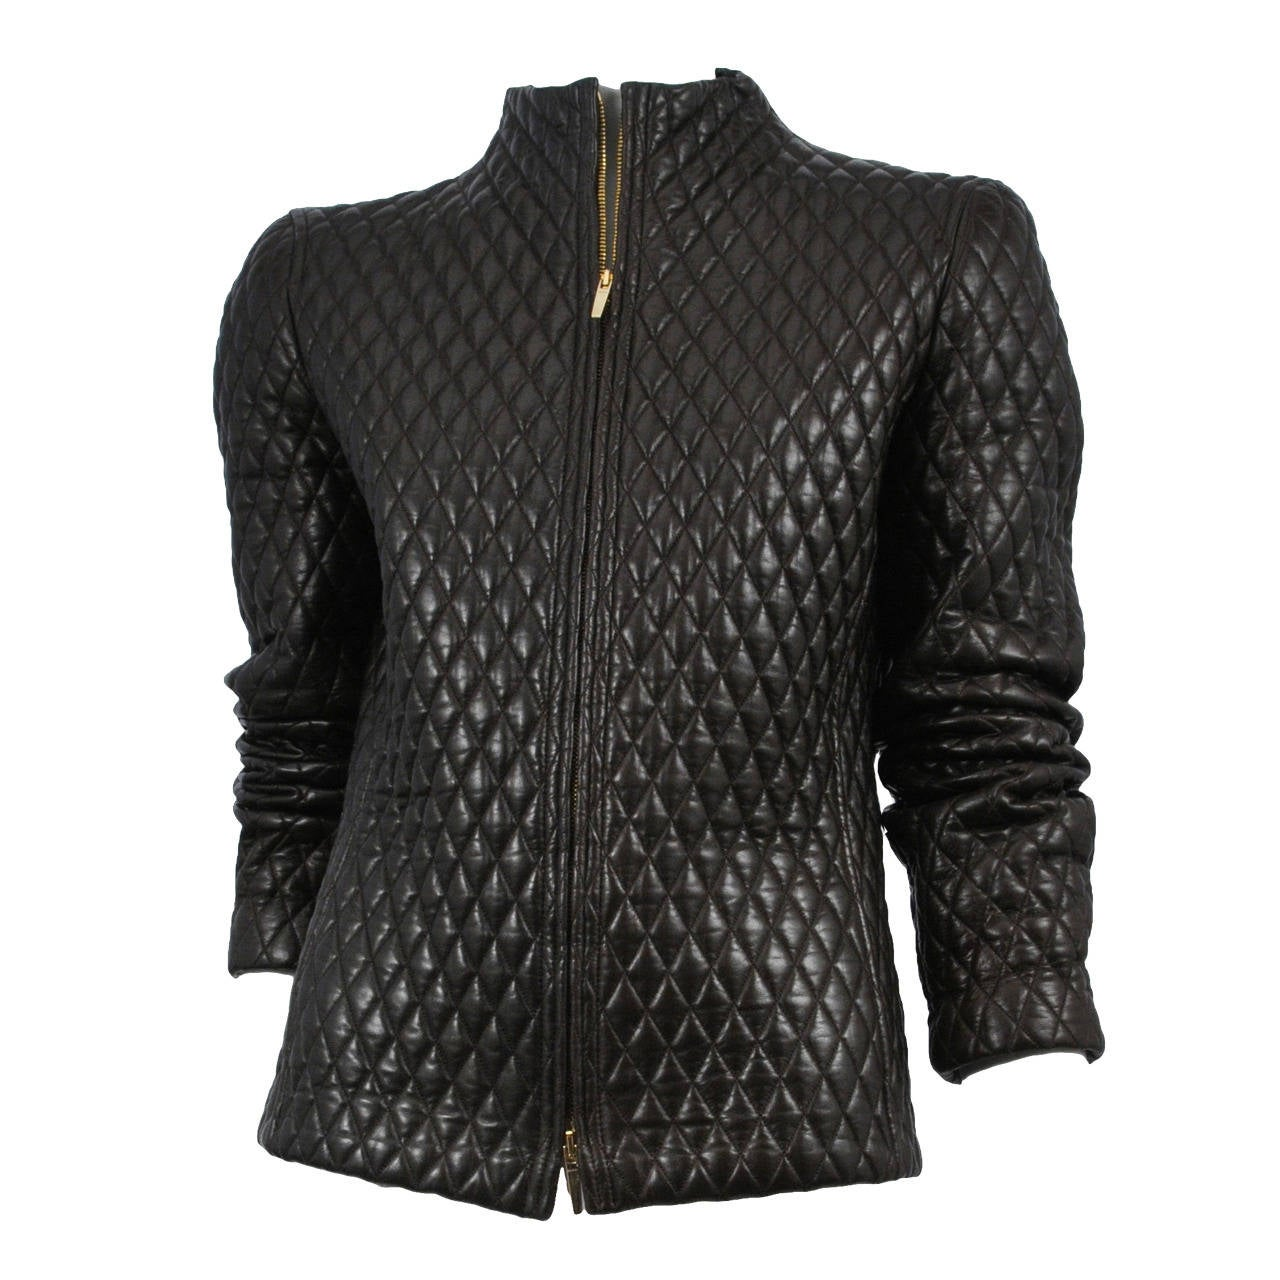 Tom Ford for Gucci Leather Quilted Jacket 1